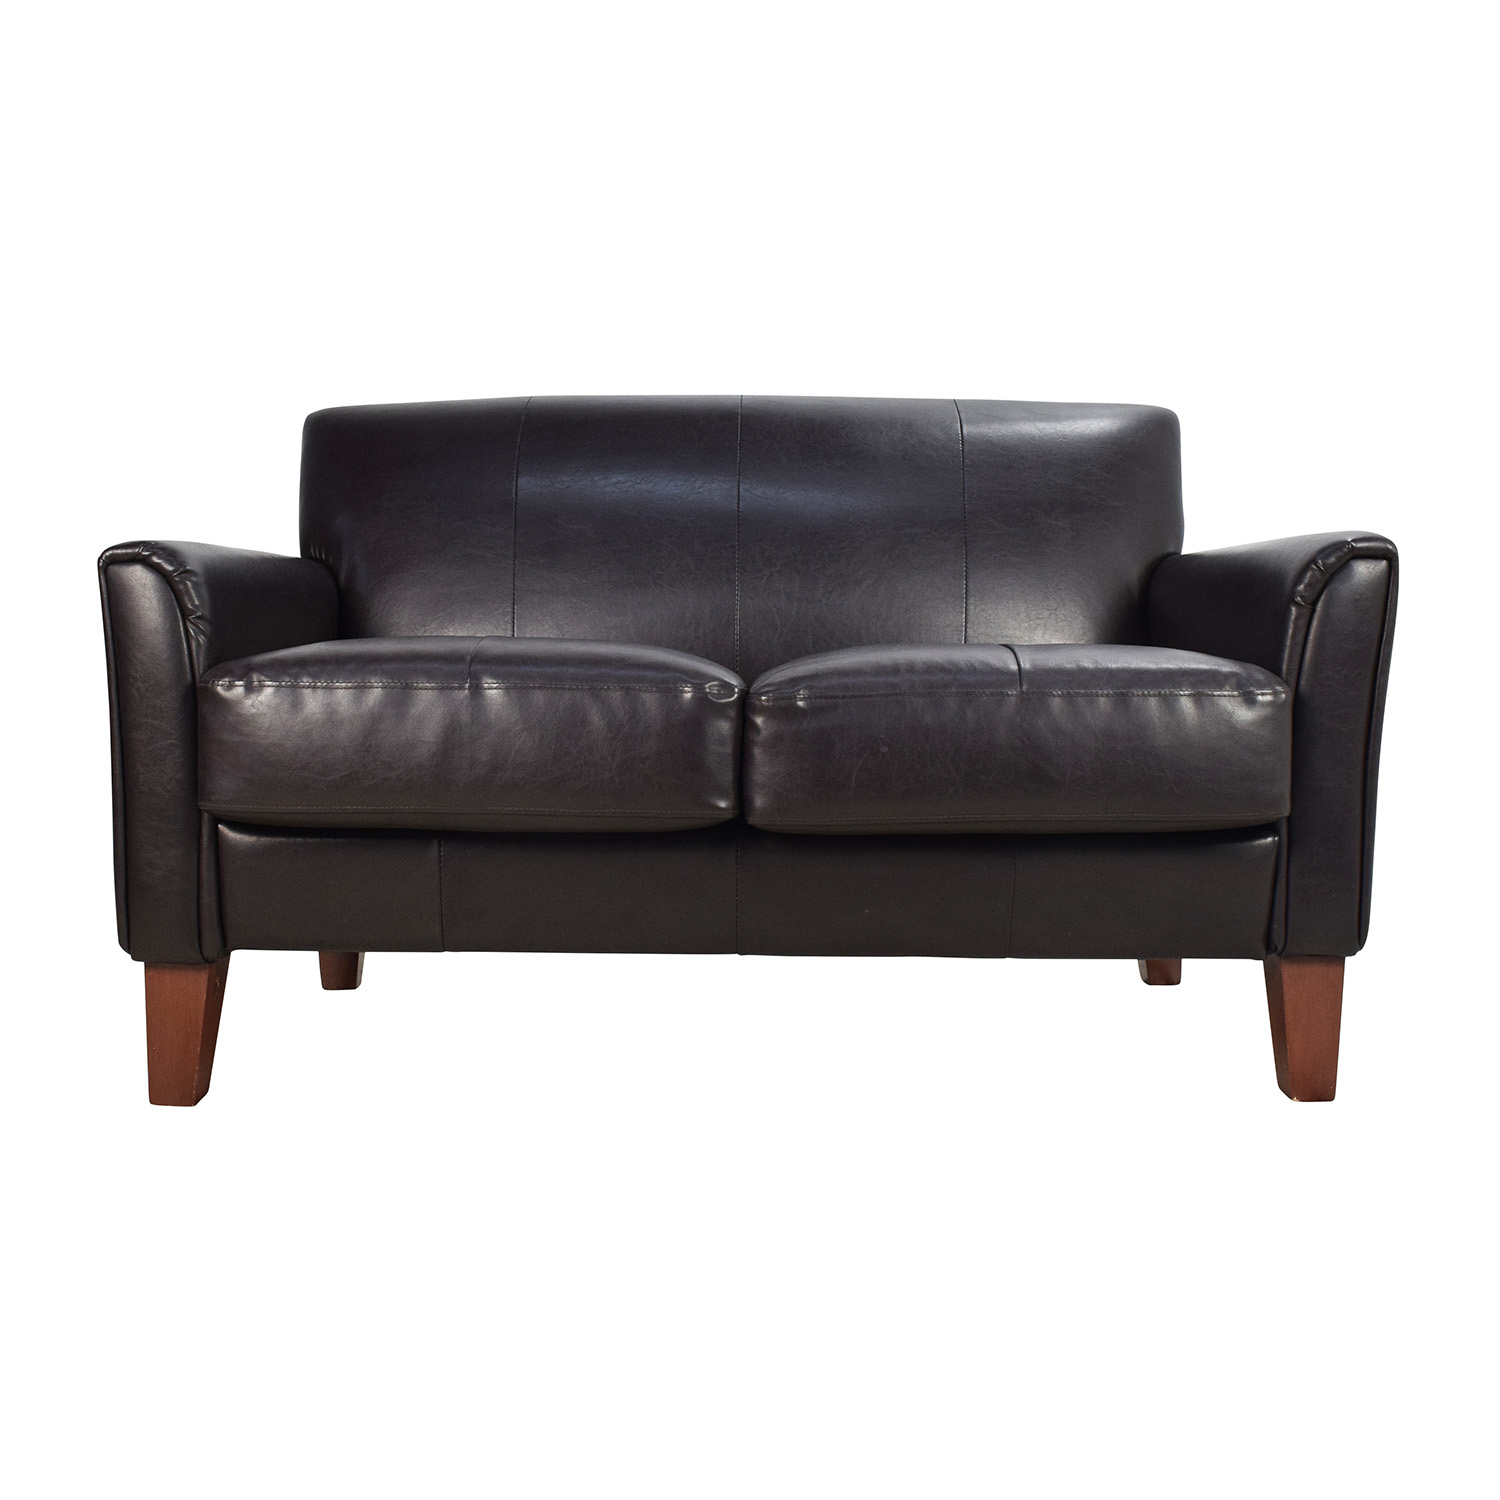 Order sofas online custom slipcovers and couch cover for for Used leather sofa set